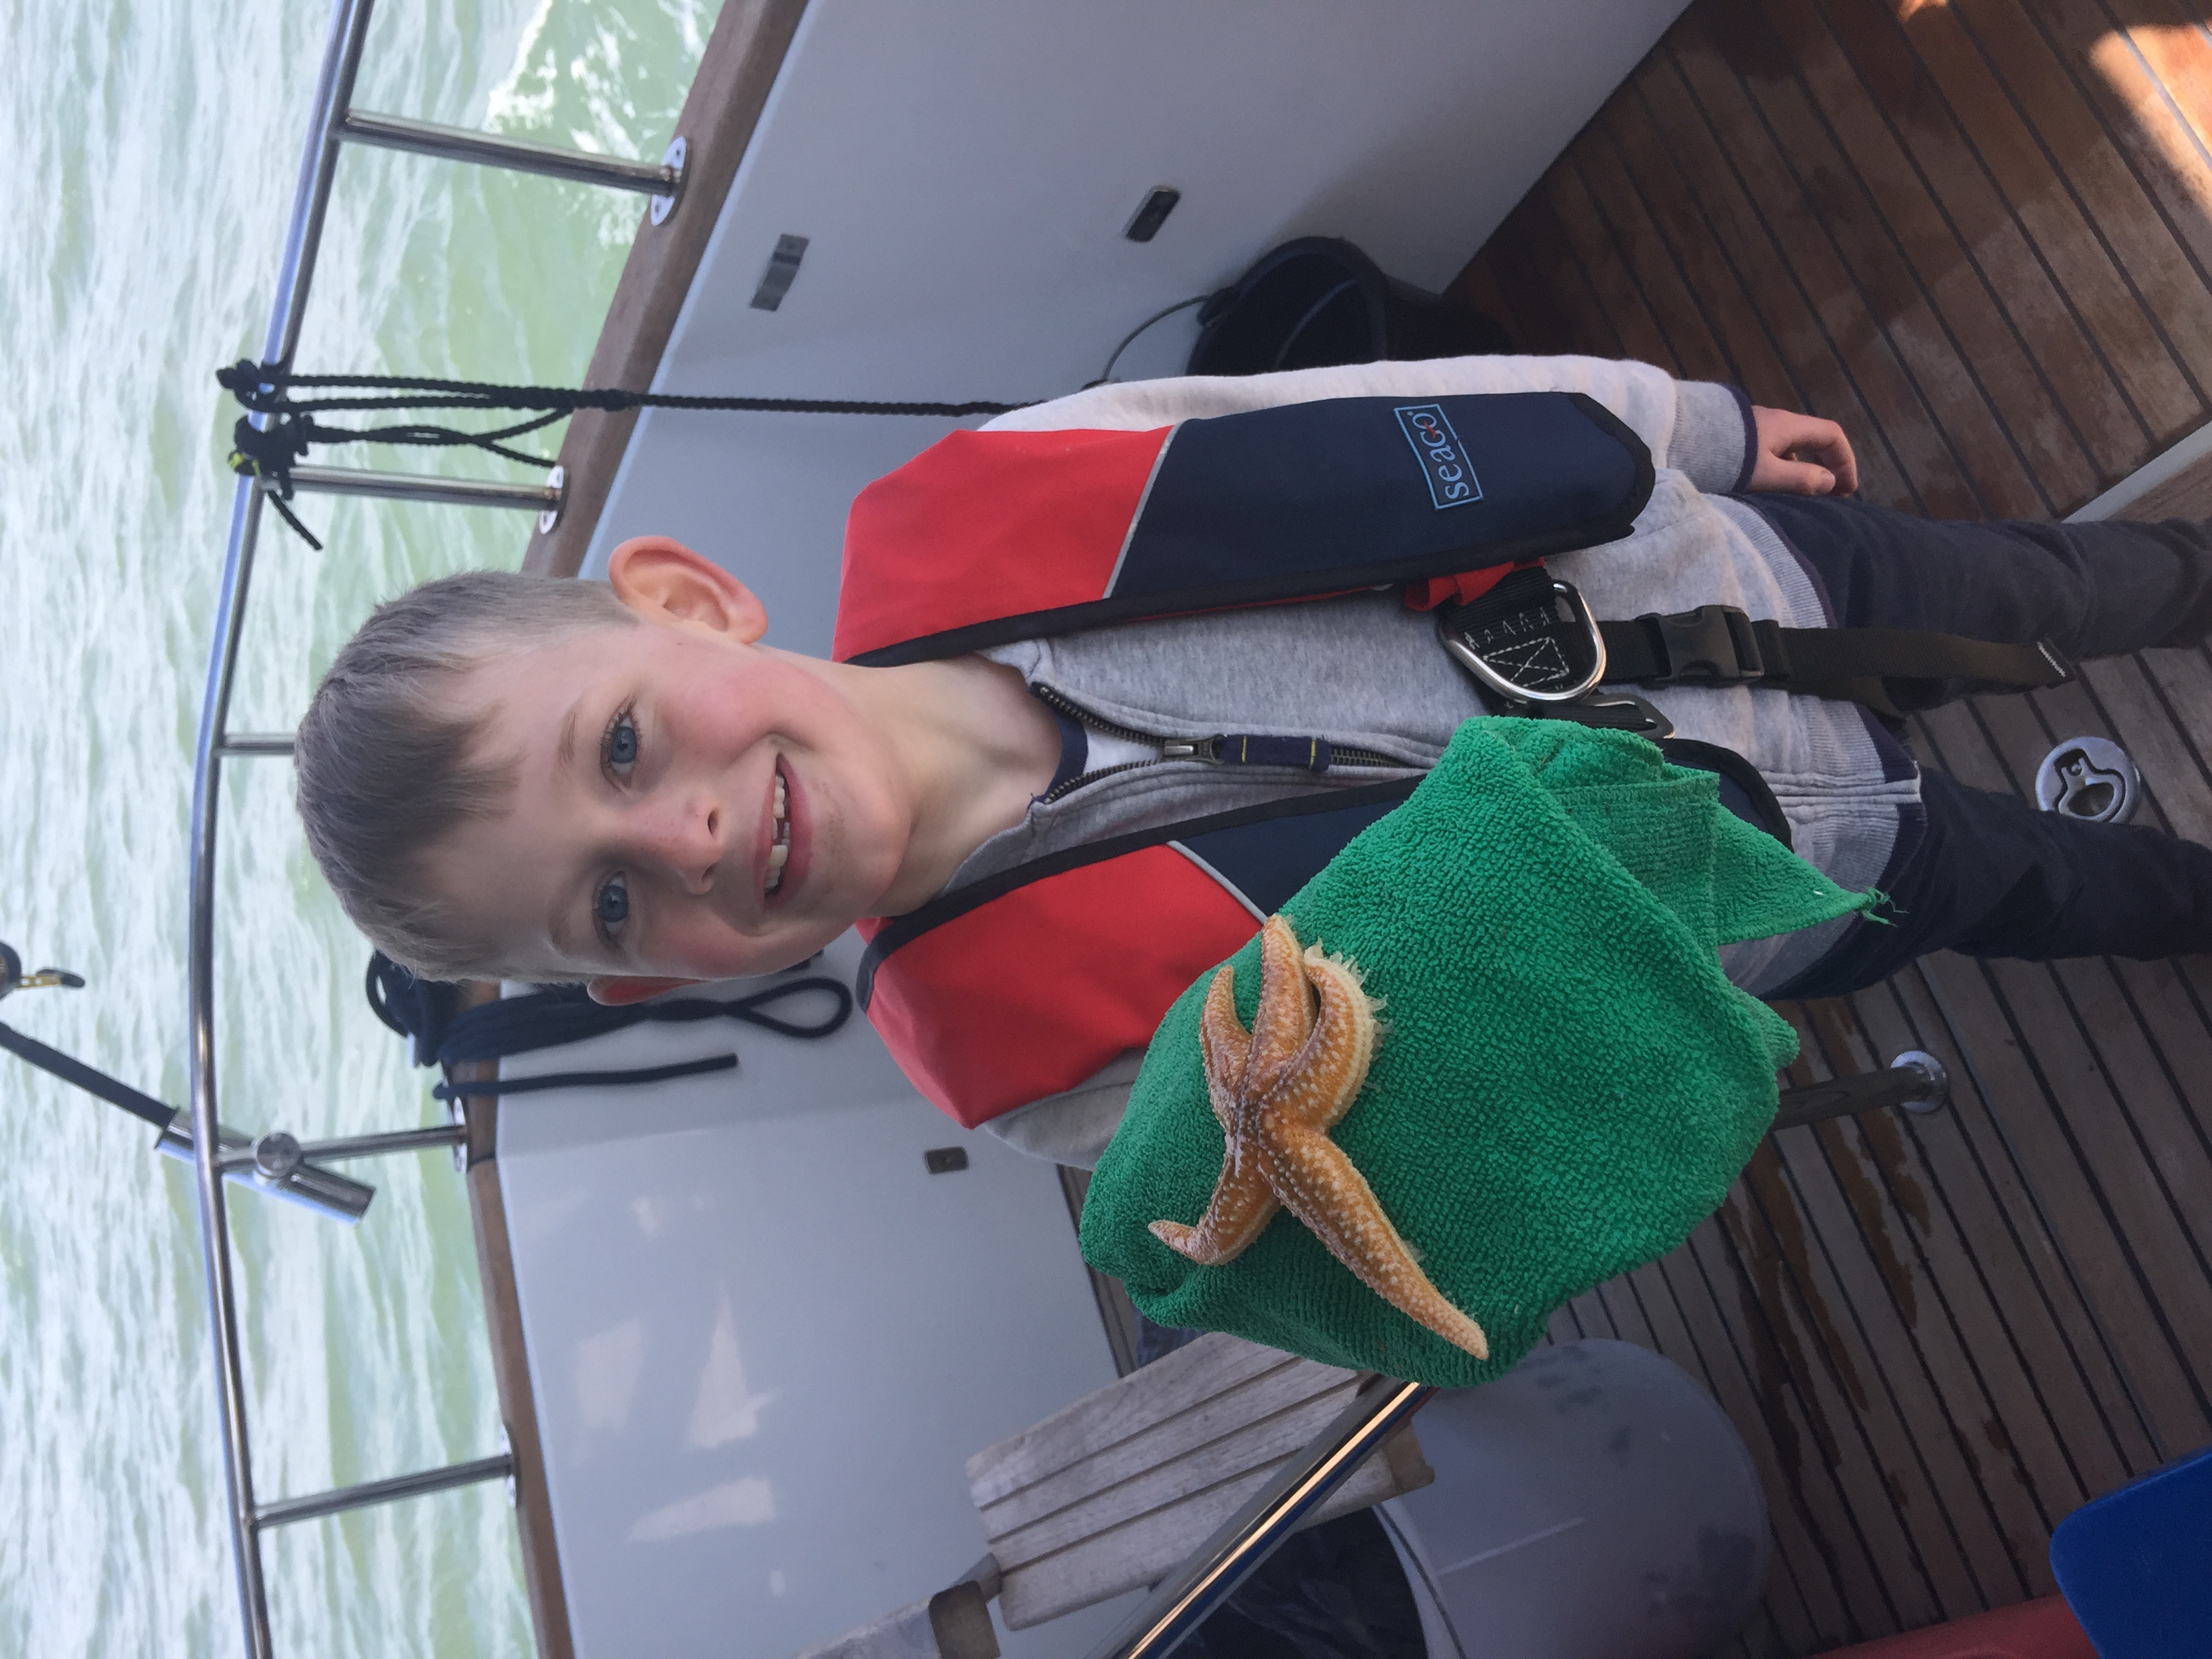 Starfish caught and safely returned